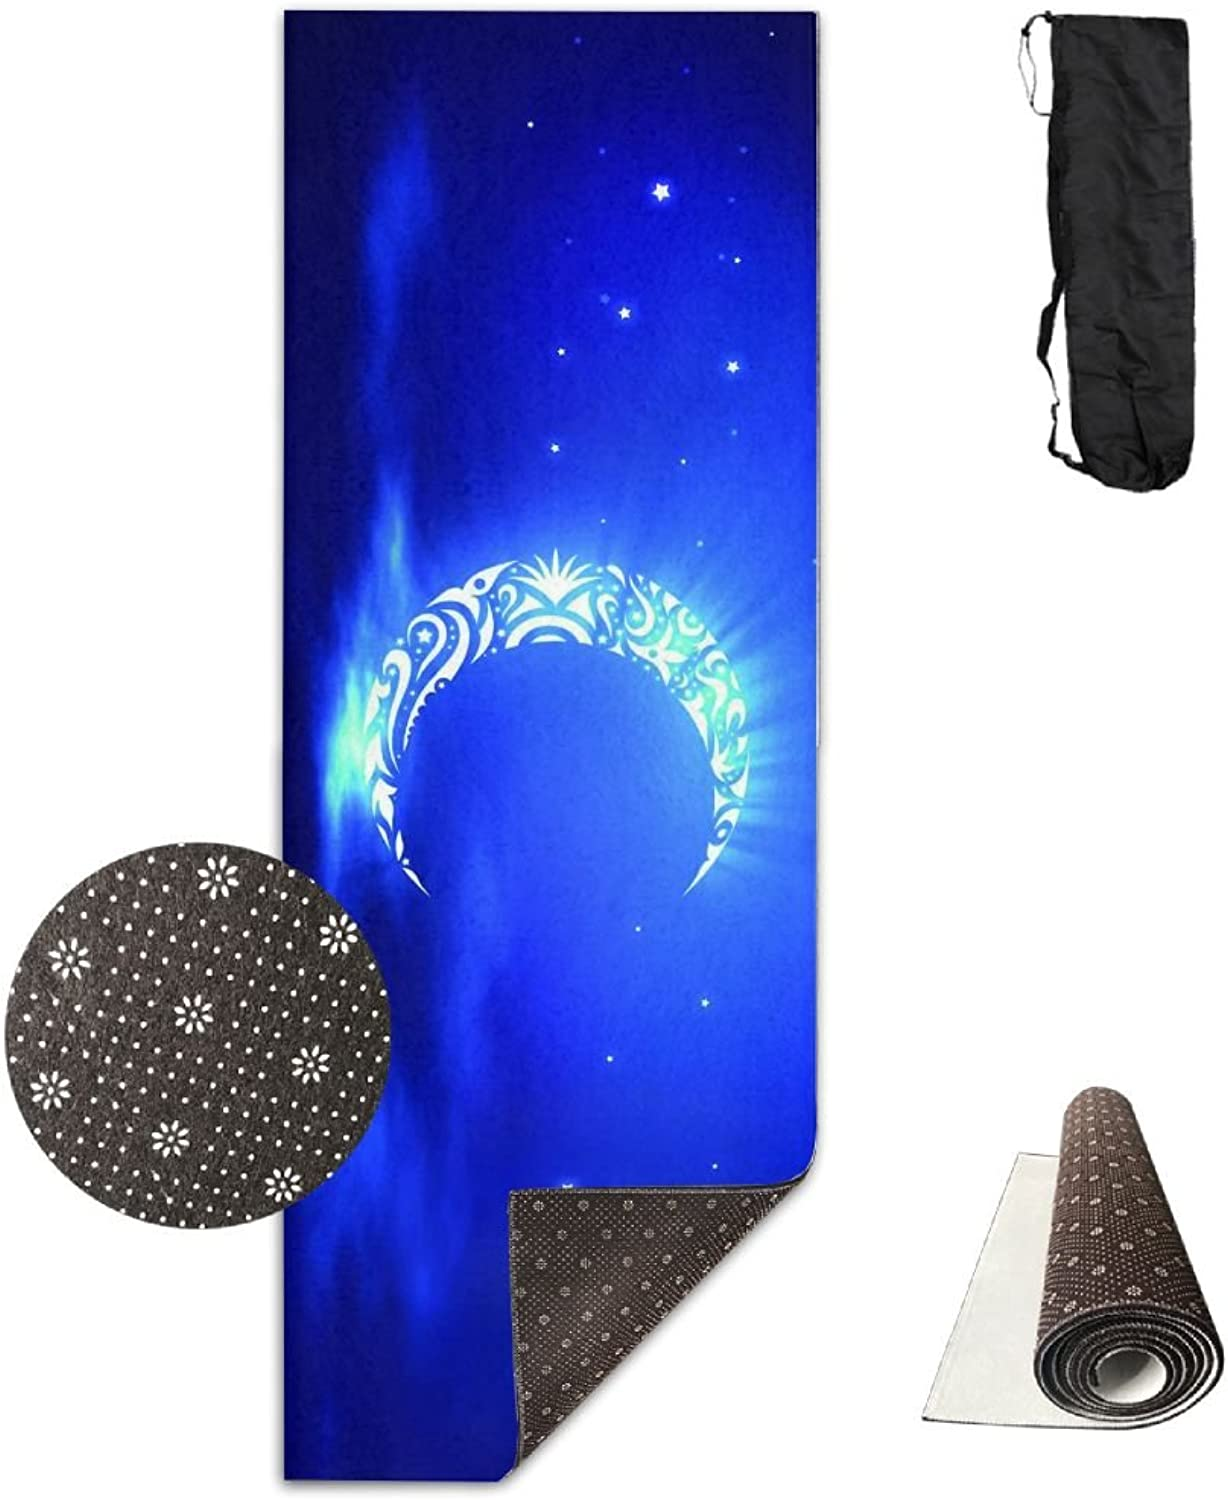 BINGZHAO bluee Crescent Moon Shape Painting Exercise Yoga Mat for Pilates,Gym,Fitness, Travel & Hiking